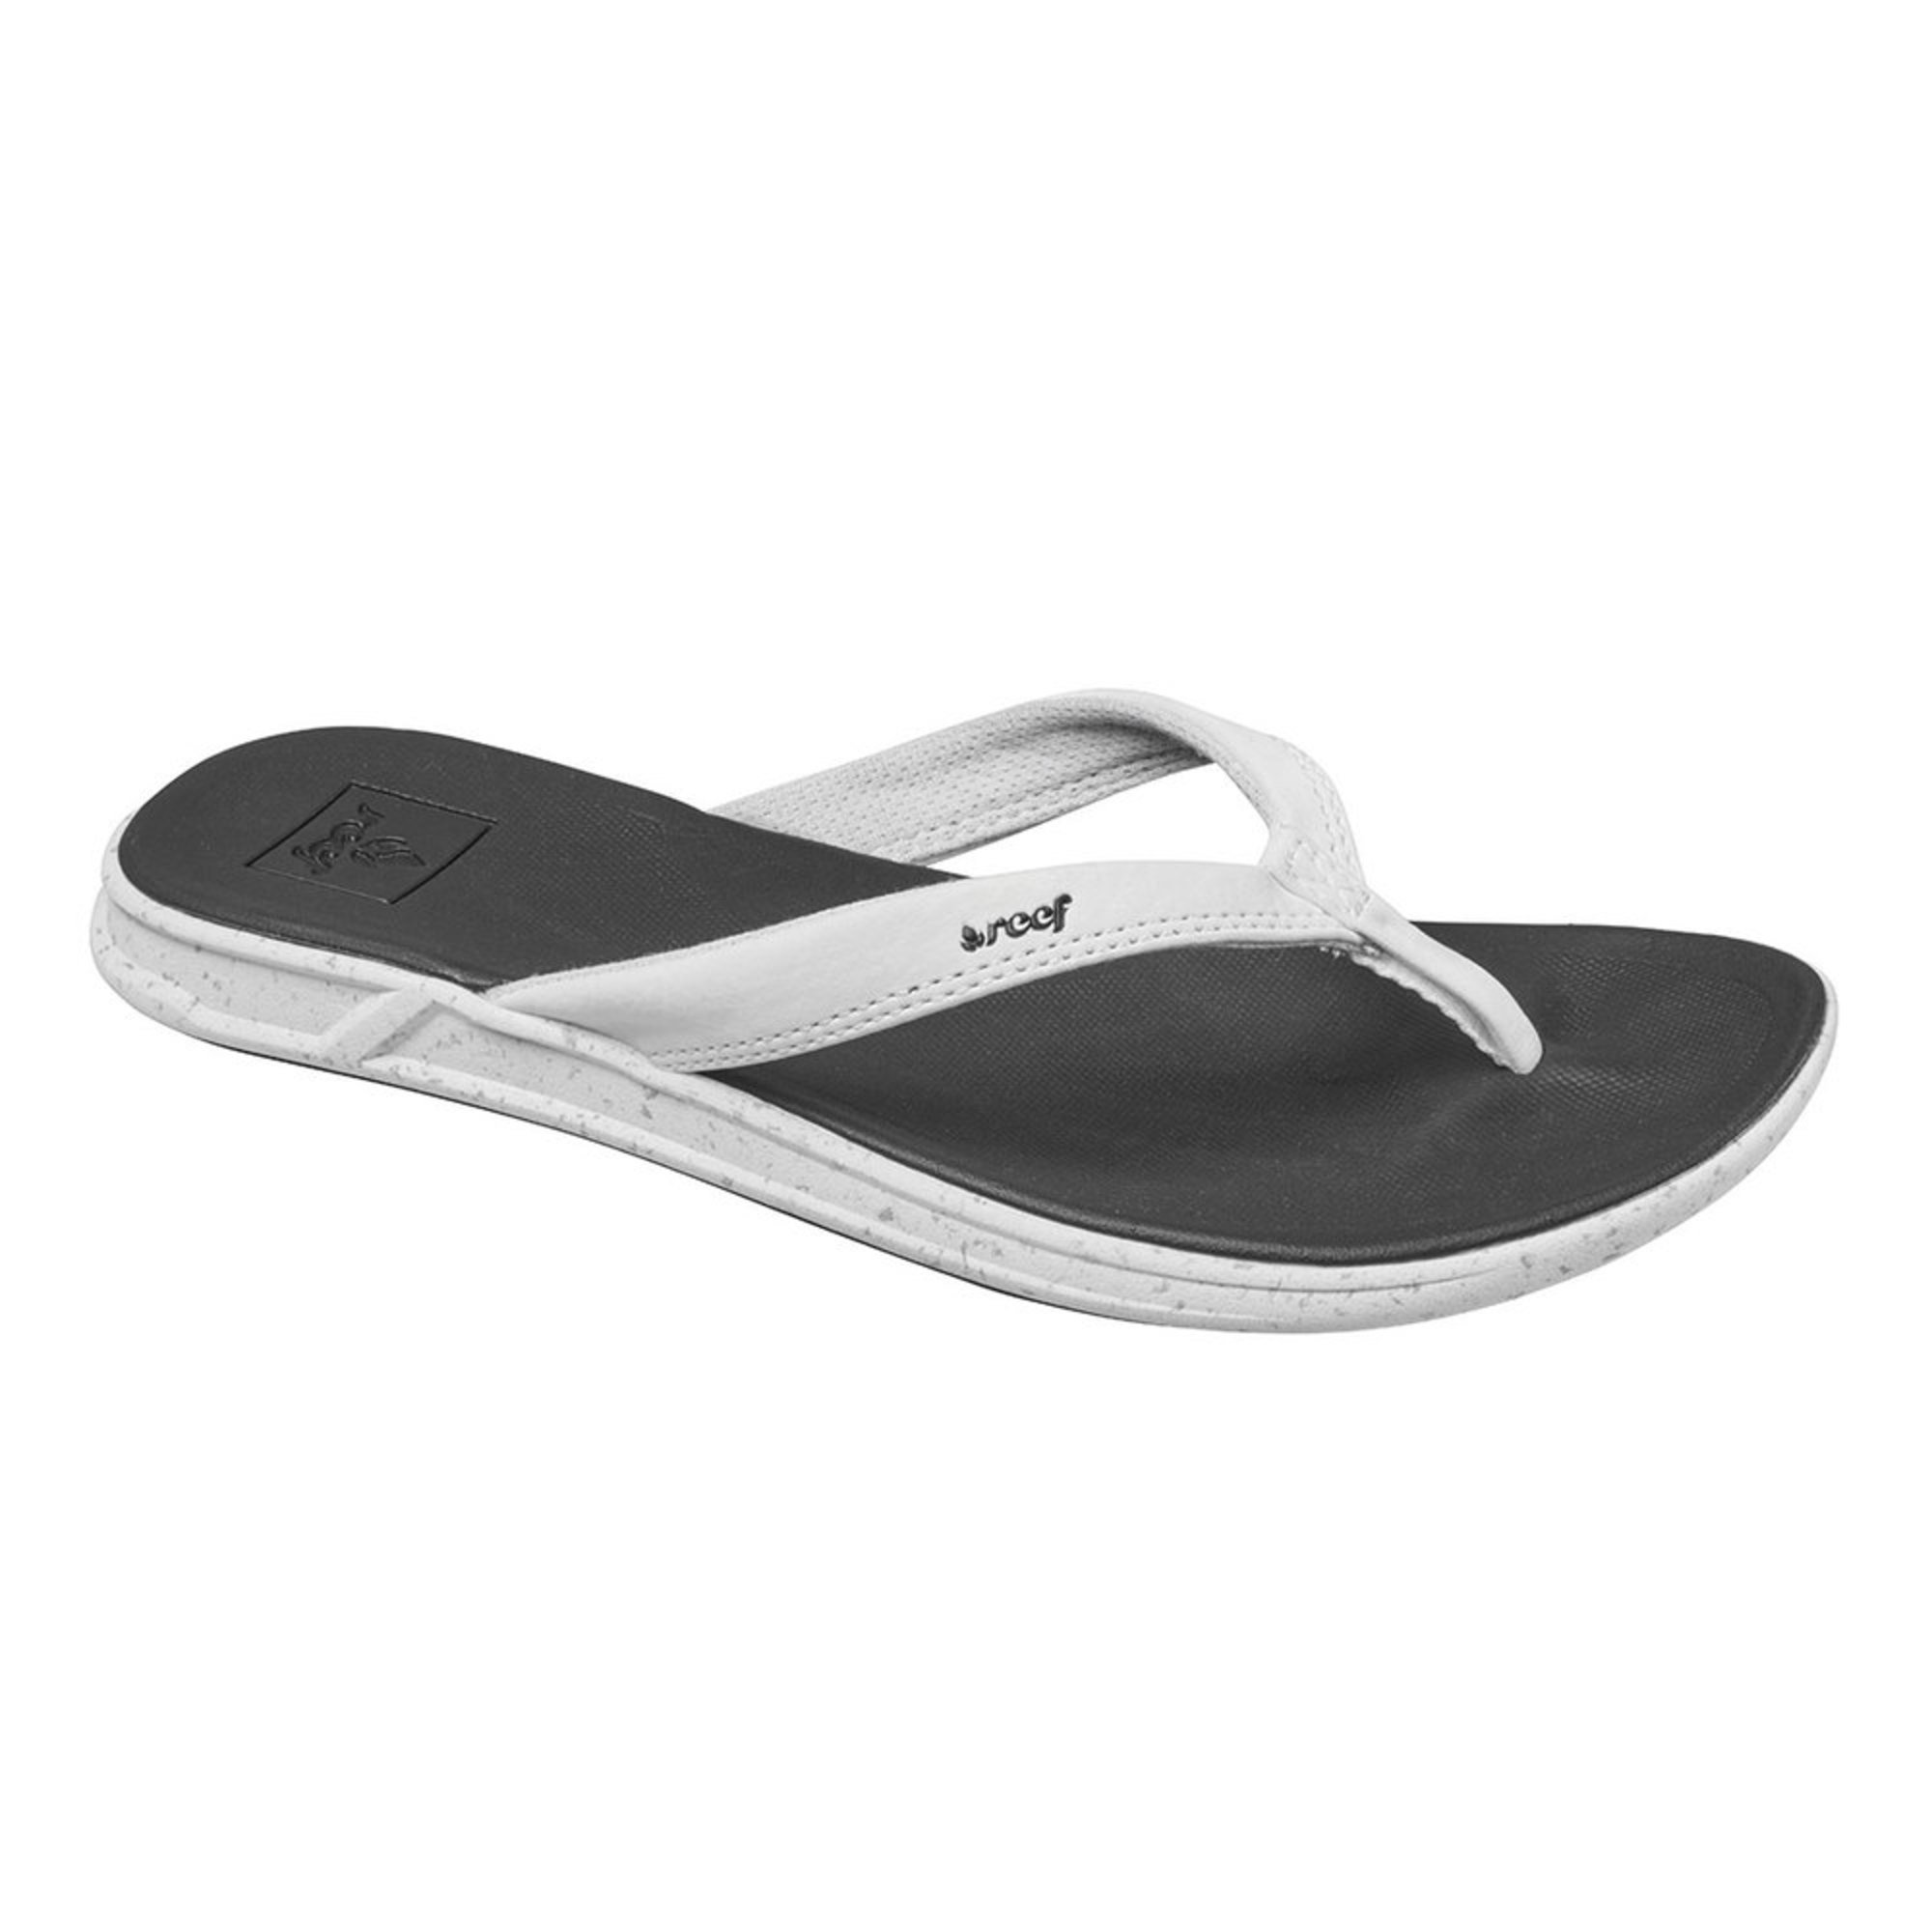 ce2825024e4c Reef. Reef Women s Rover Catch Pop Sandal